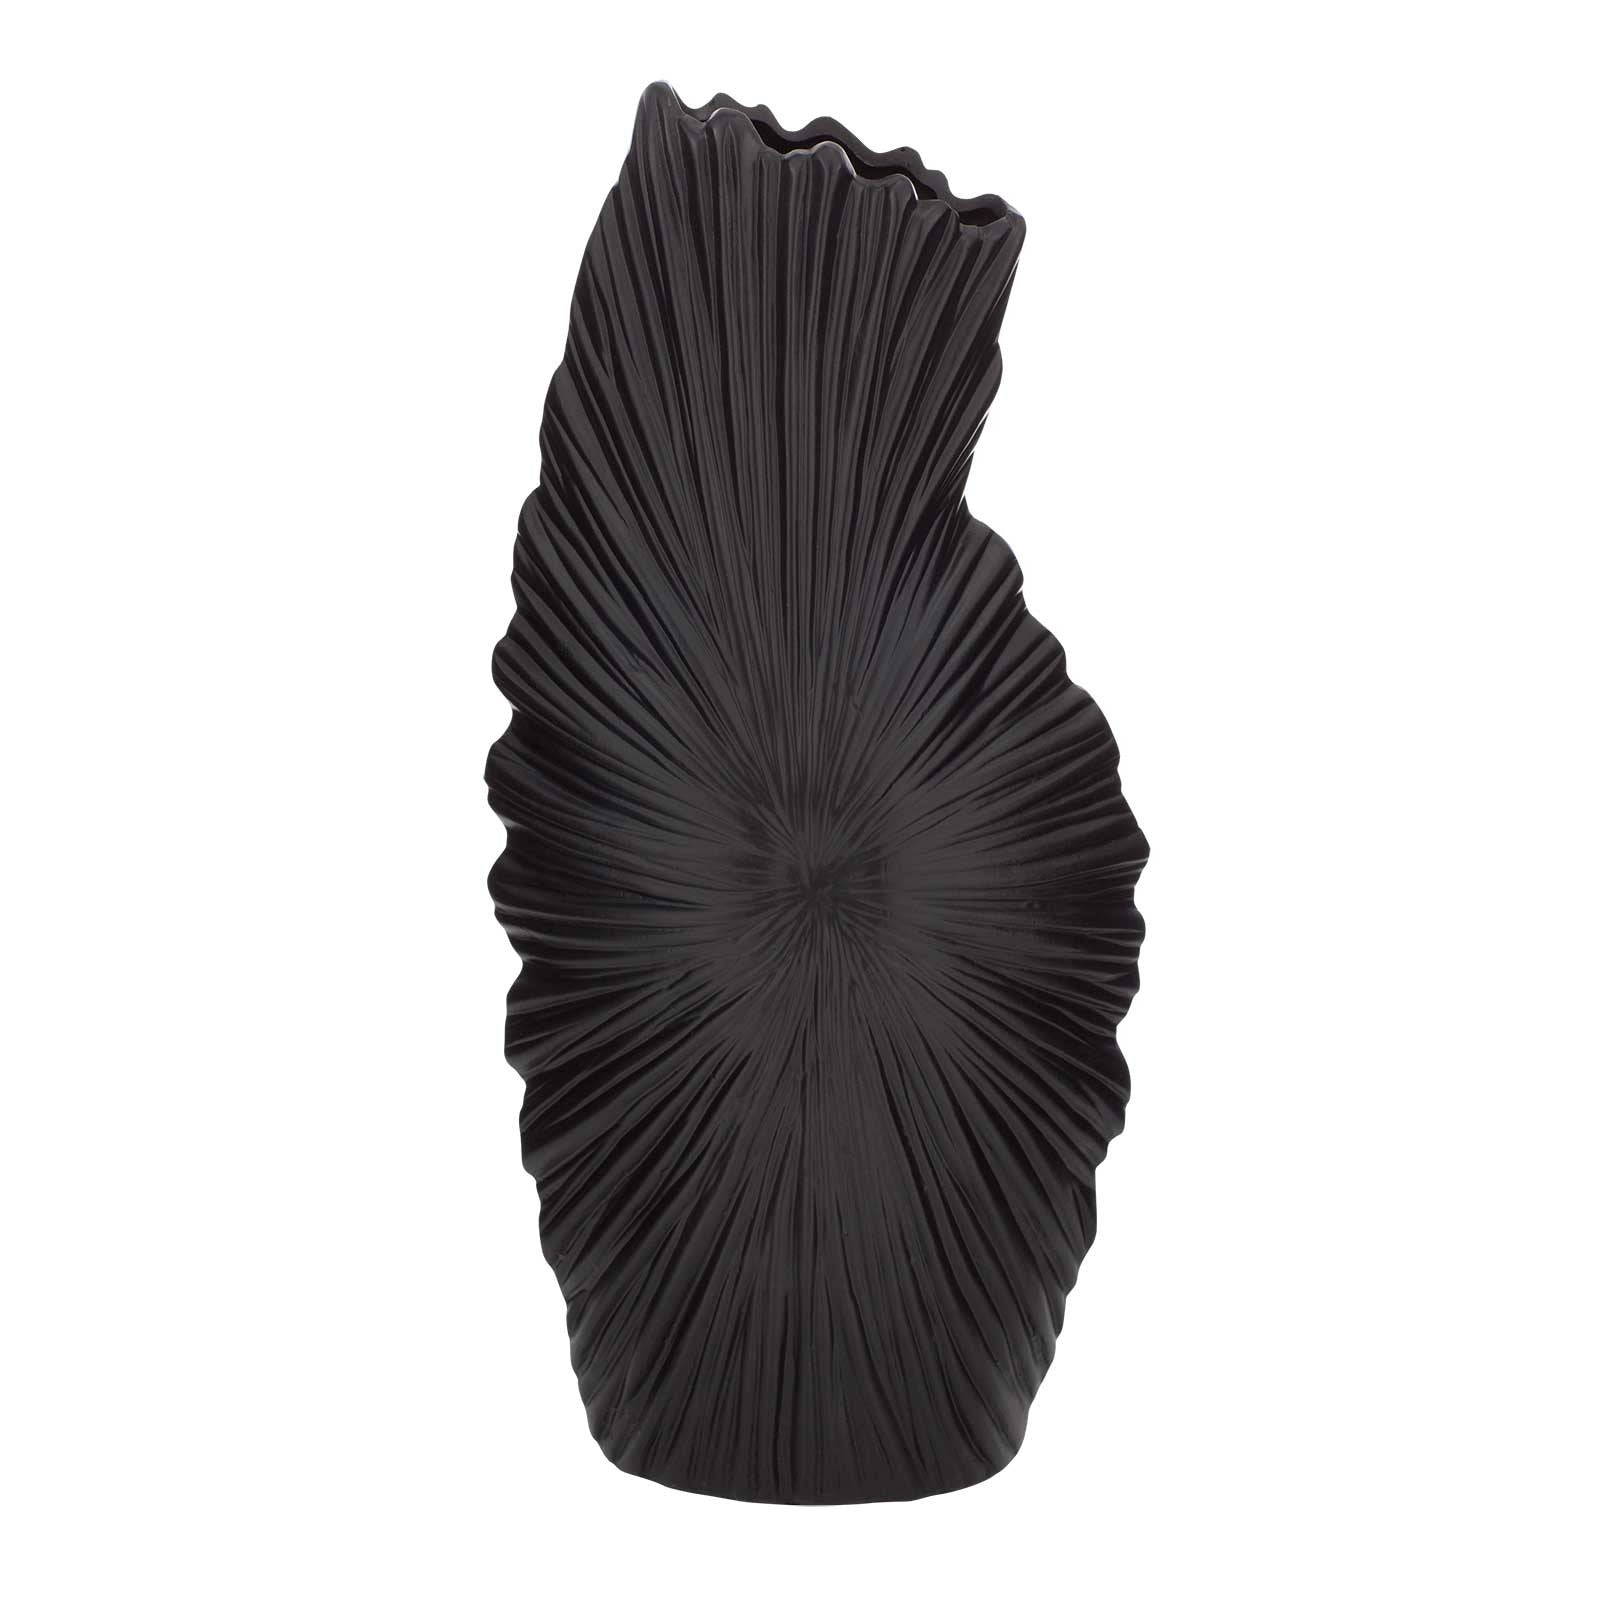 Tall Ceramic Nautical Seashell Vase Black by Aufora